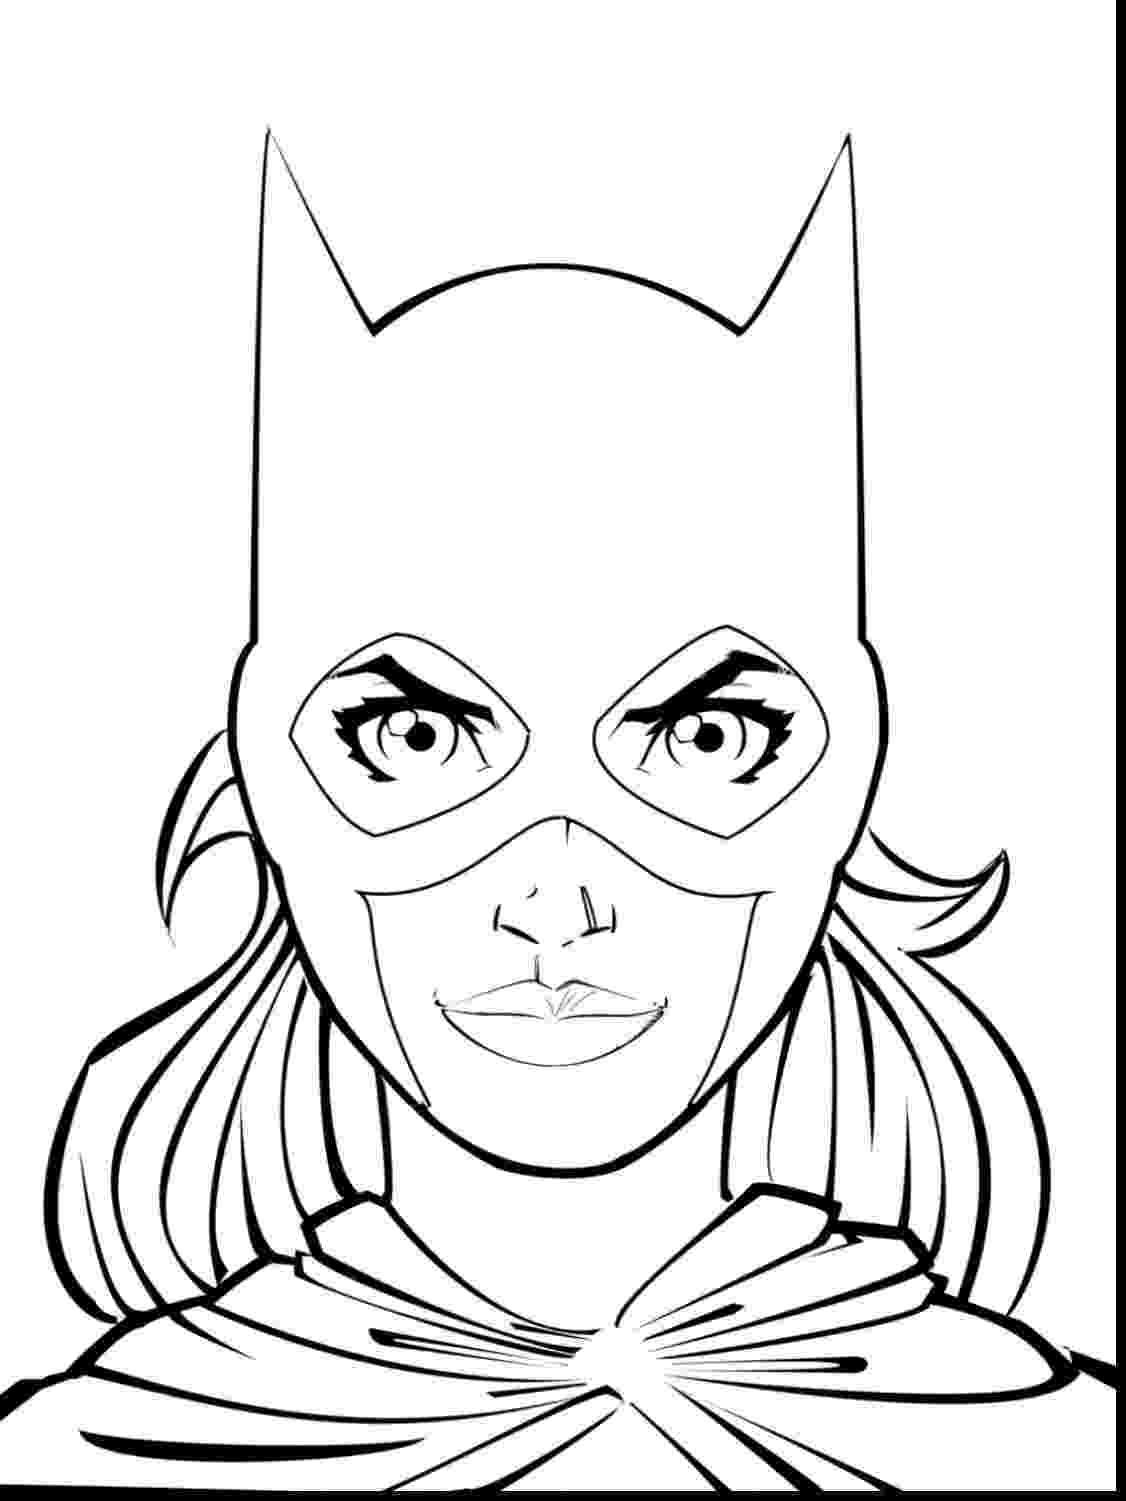 catwoman printable coloring pages catwoman coloring pages coloring picture of catwoman in pages catwoman coloring printable